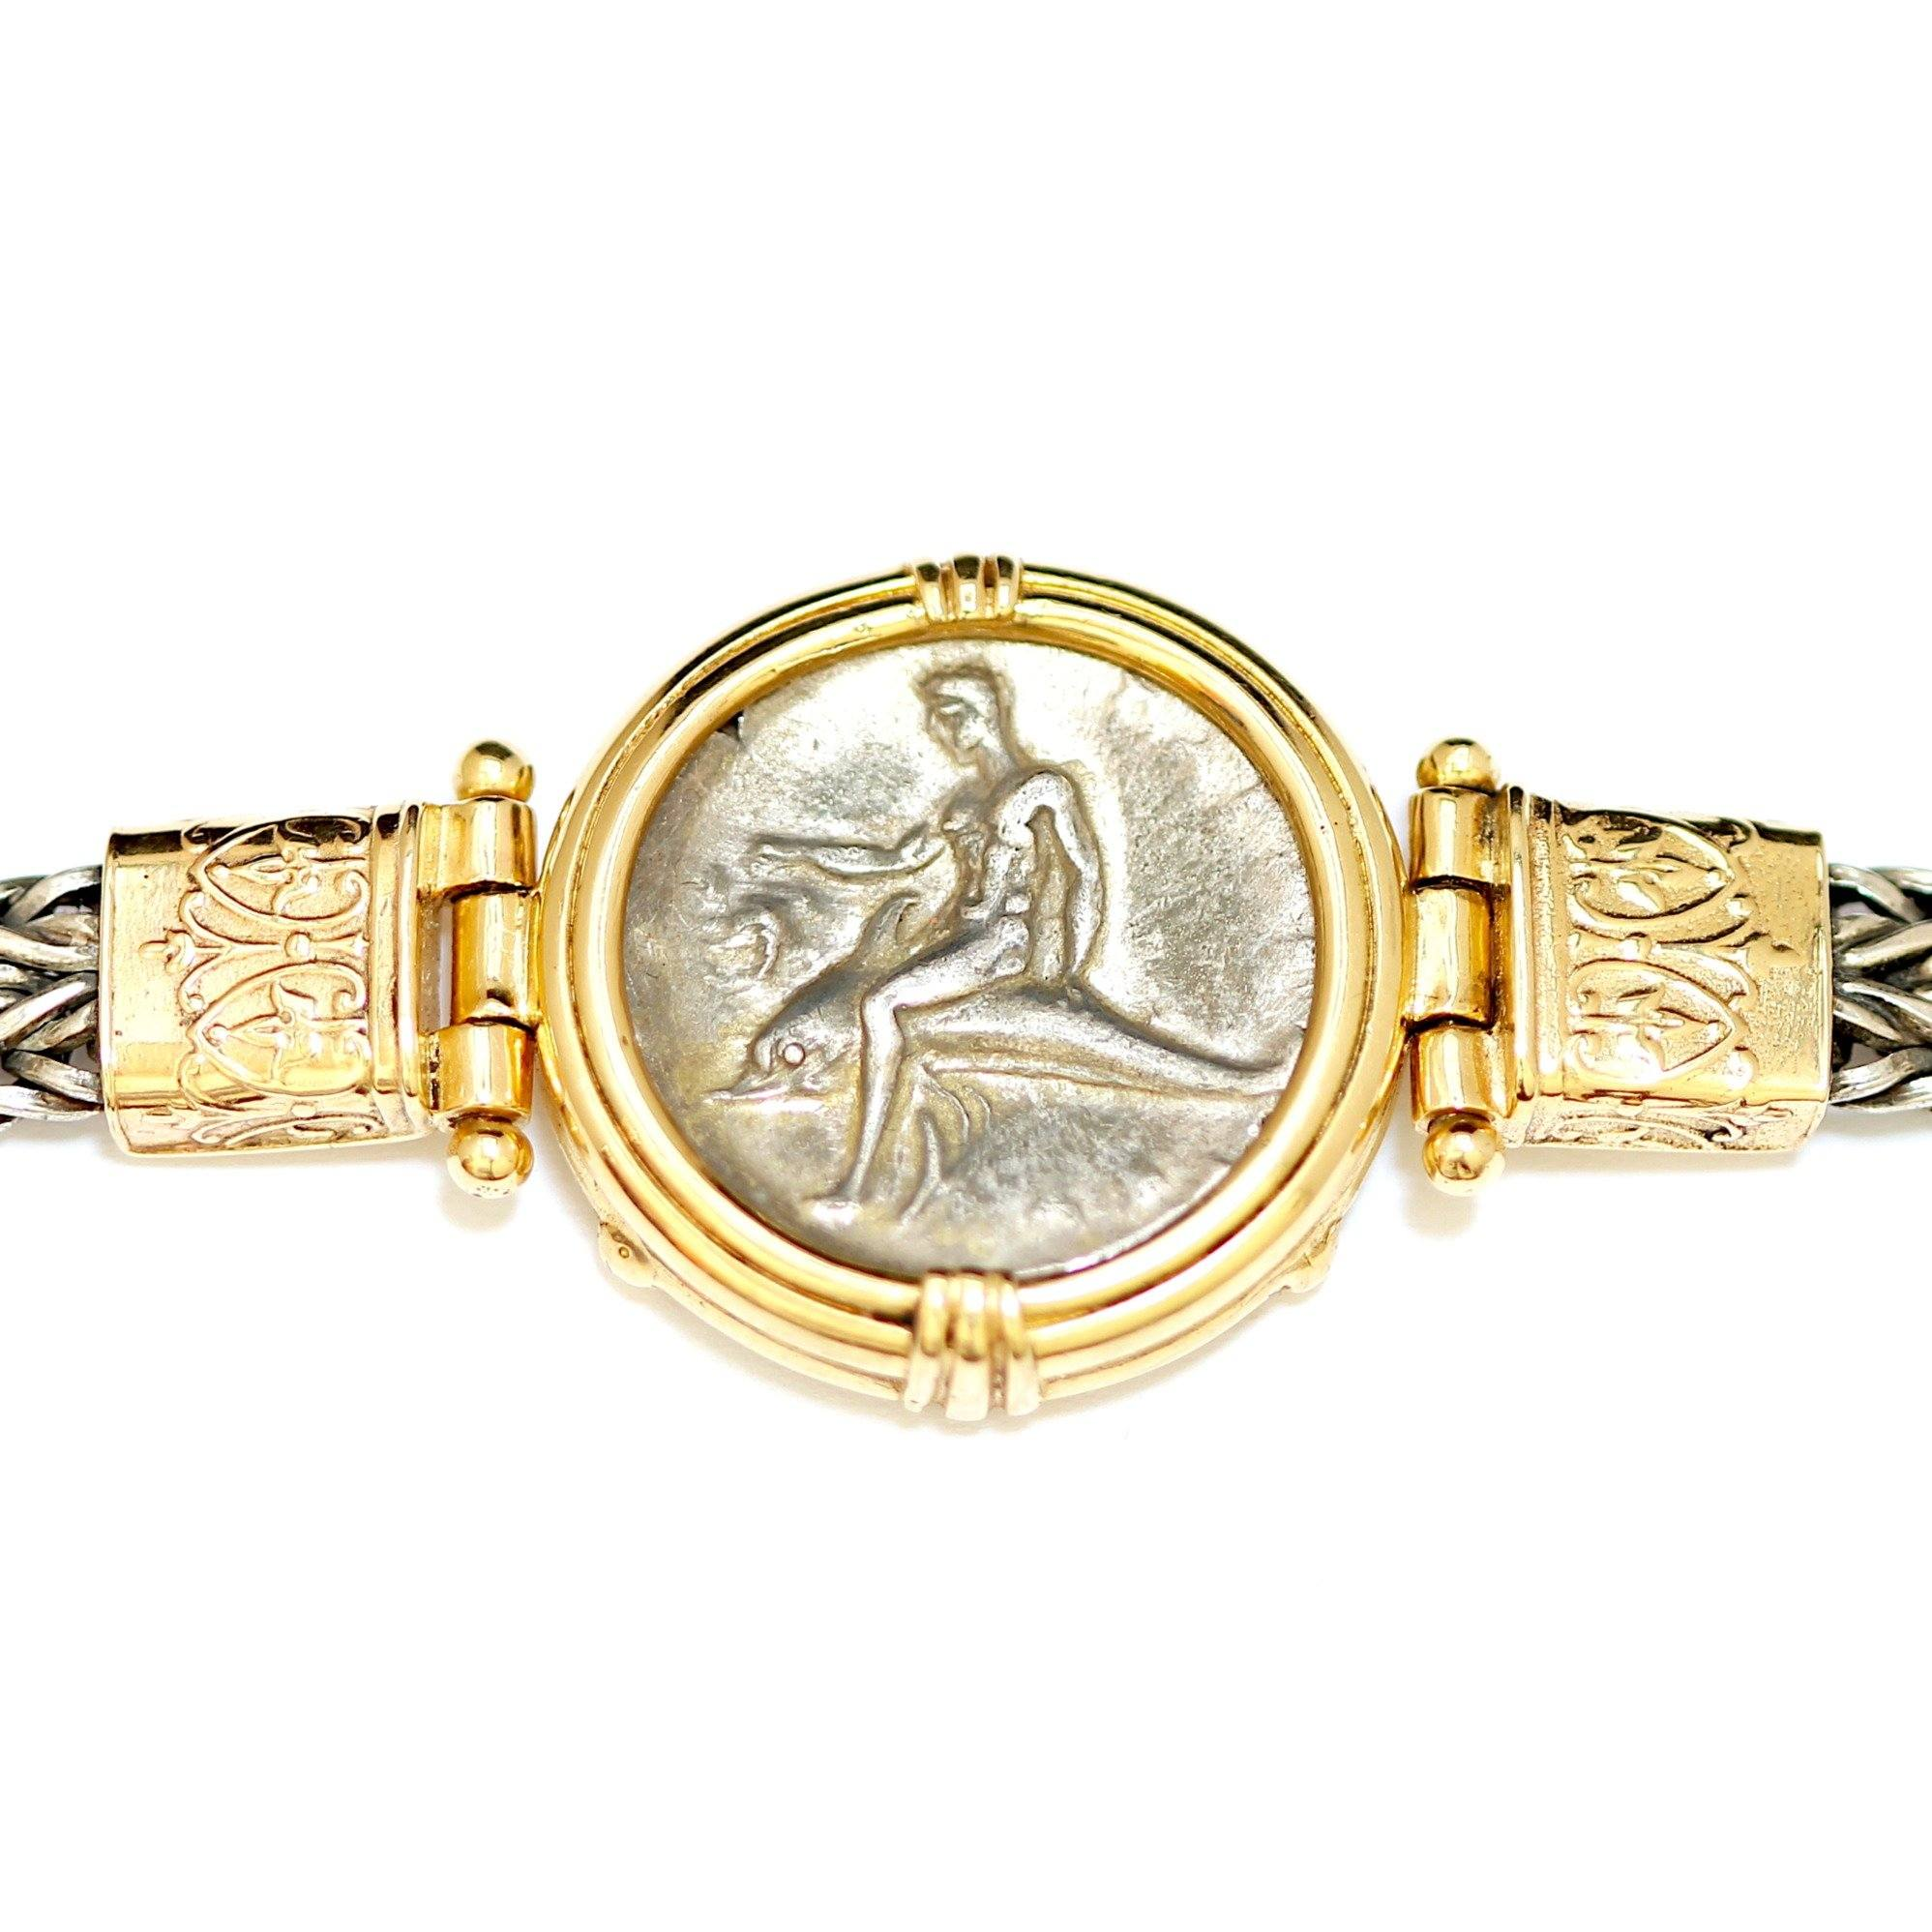 Boy on a Dolphin, Greek Coin Bracelet, 14K Gold and Sterling, Genuine Ancient Coin, with Certificate ID12744 - Erez Ancient Coin Jewelry